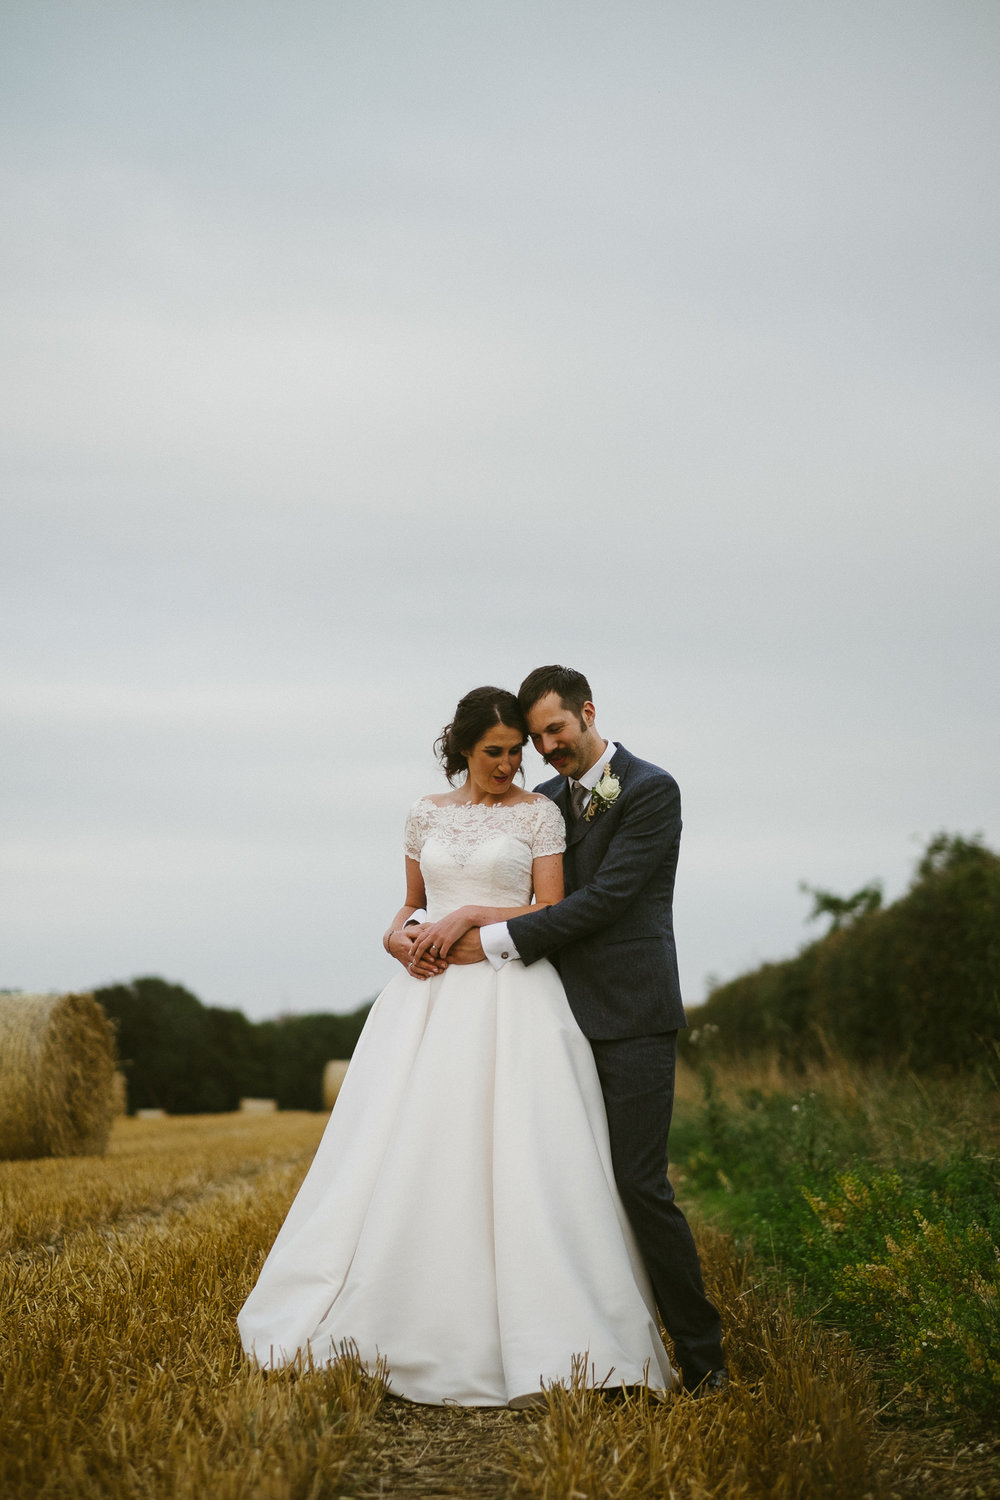 Bride and groom hold each other close in a farmers field in Yorkshire